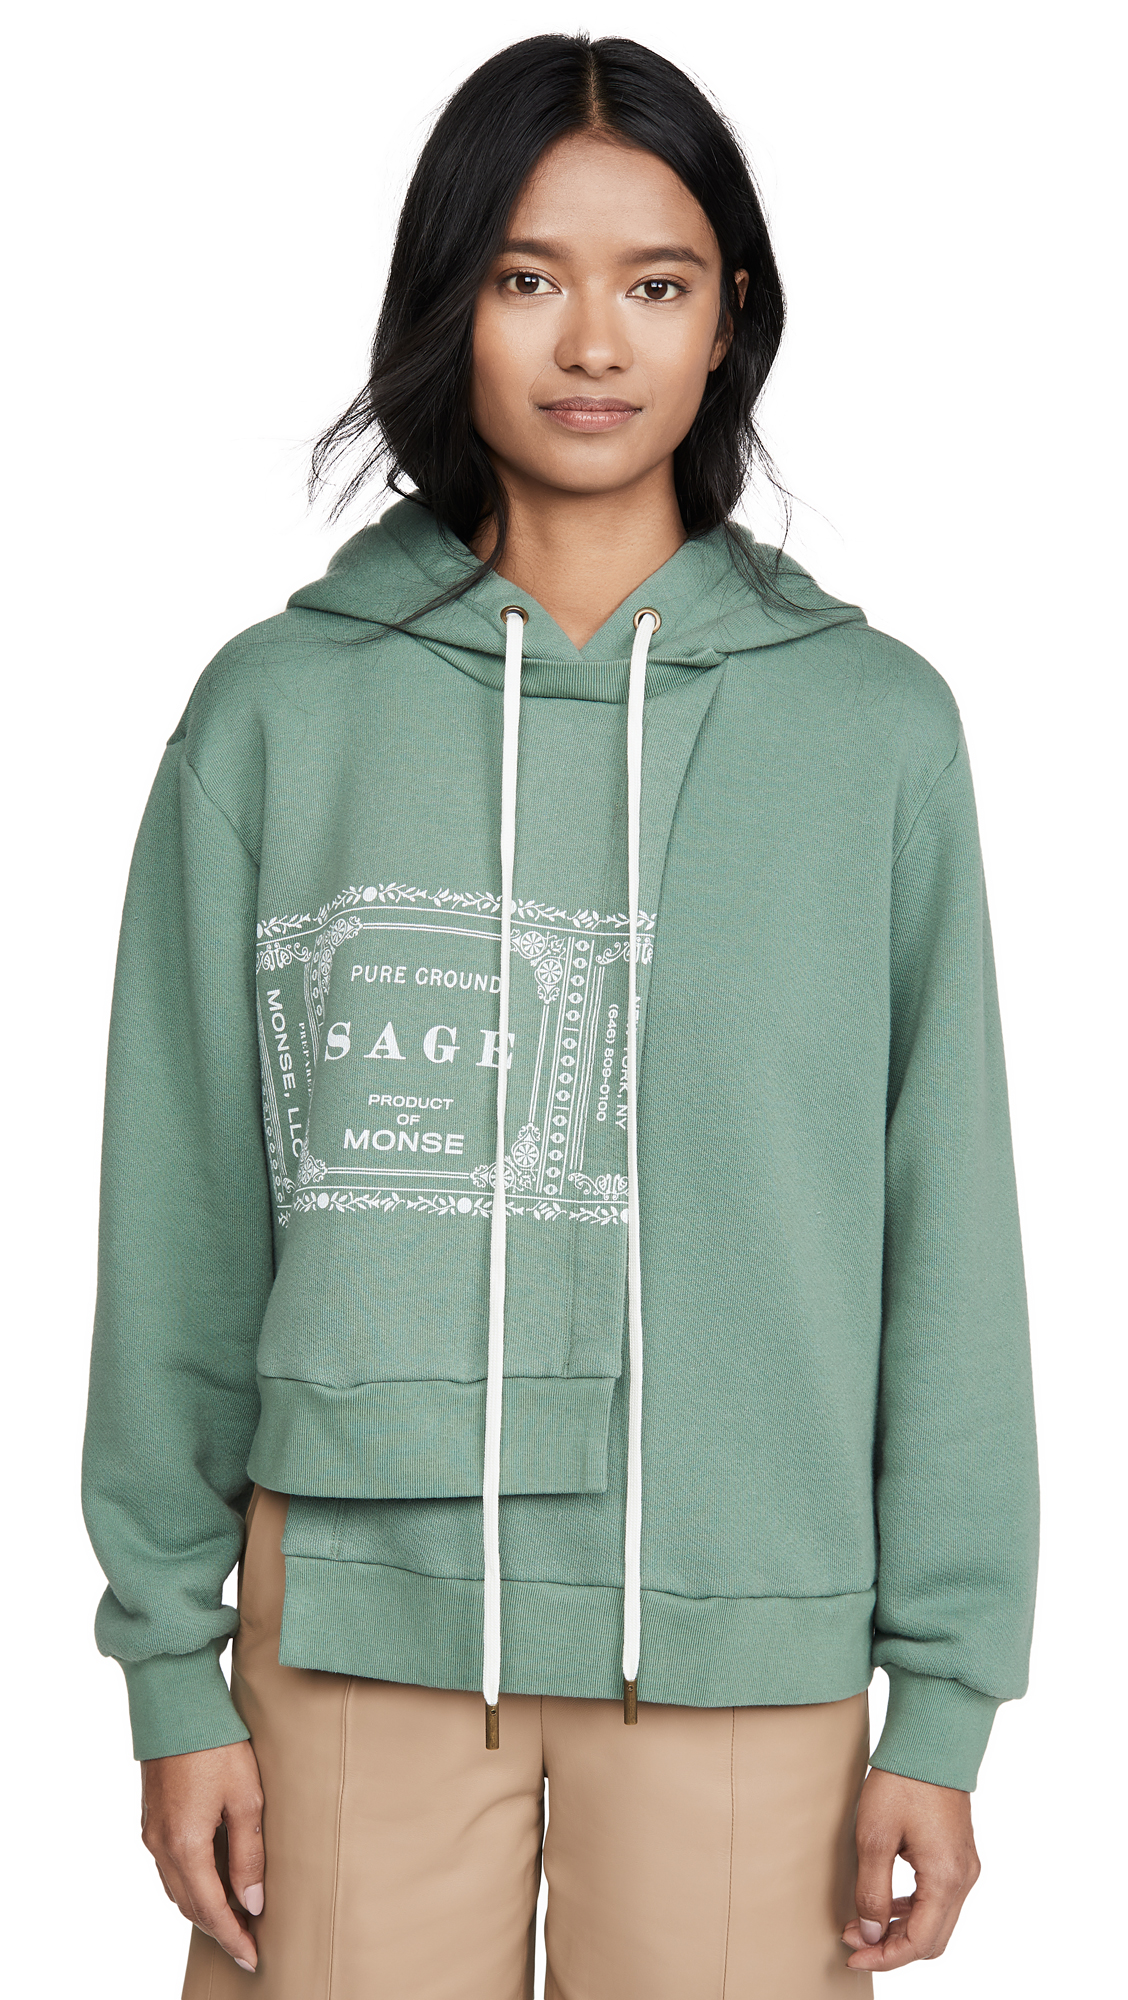 Monse Sage Double Layer Hoodie - 40% Off Sale